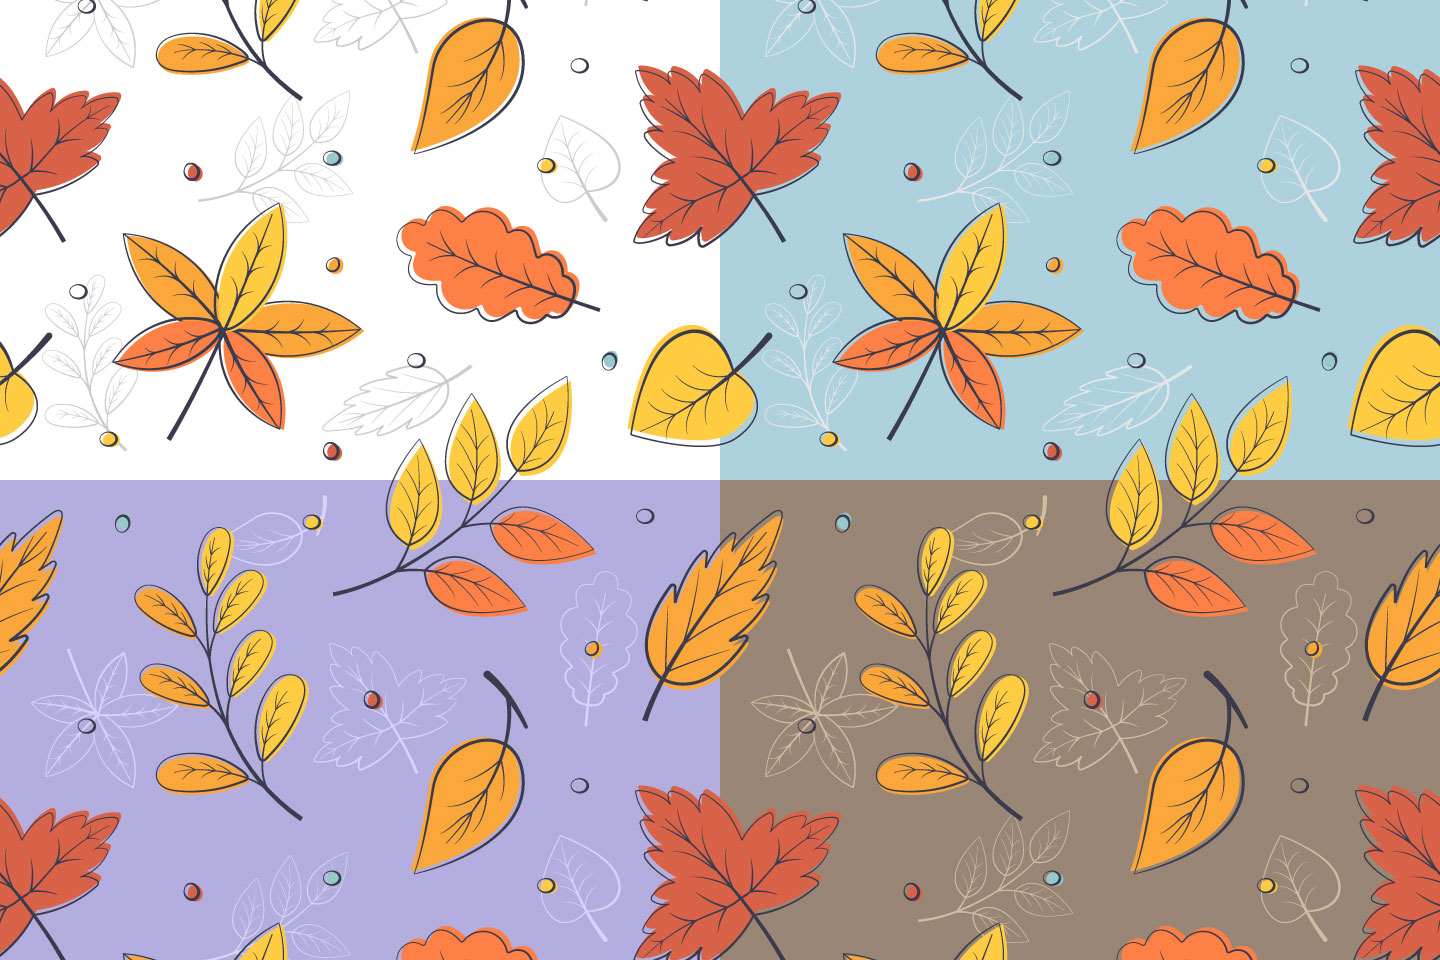 Autumn Leaves Vector Seamless Pattern